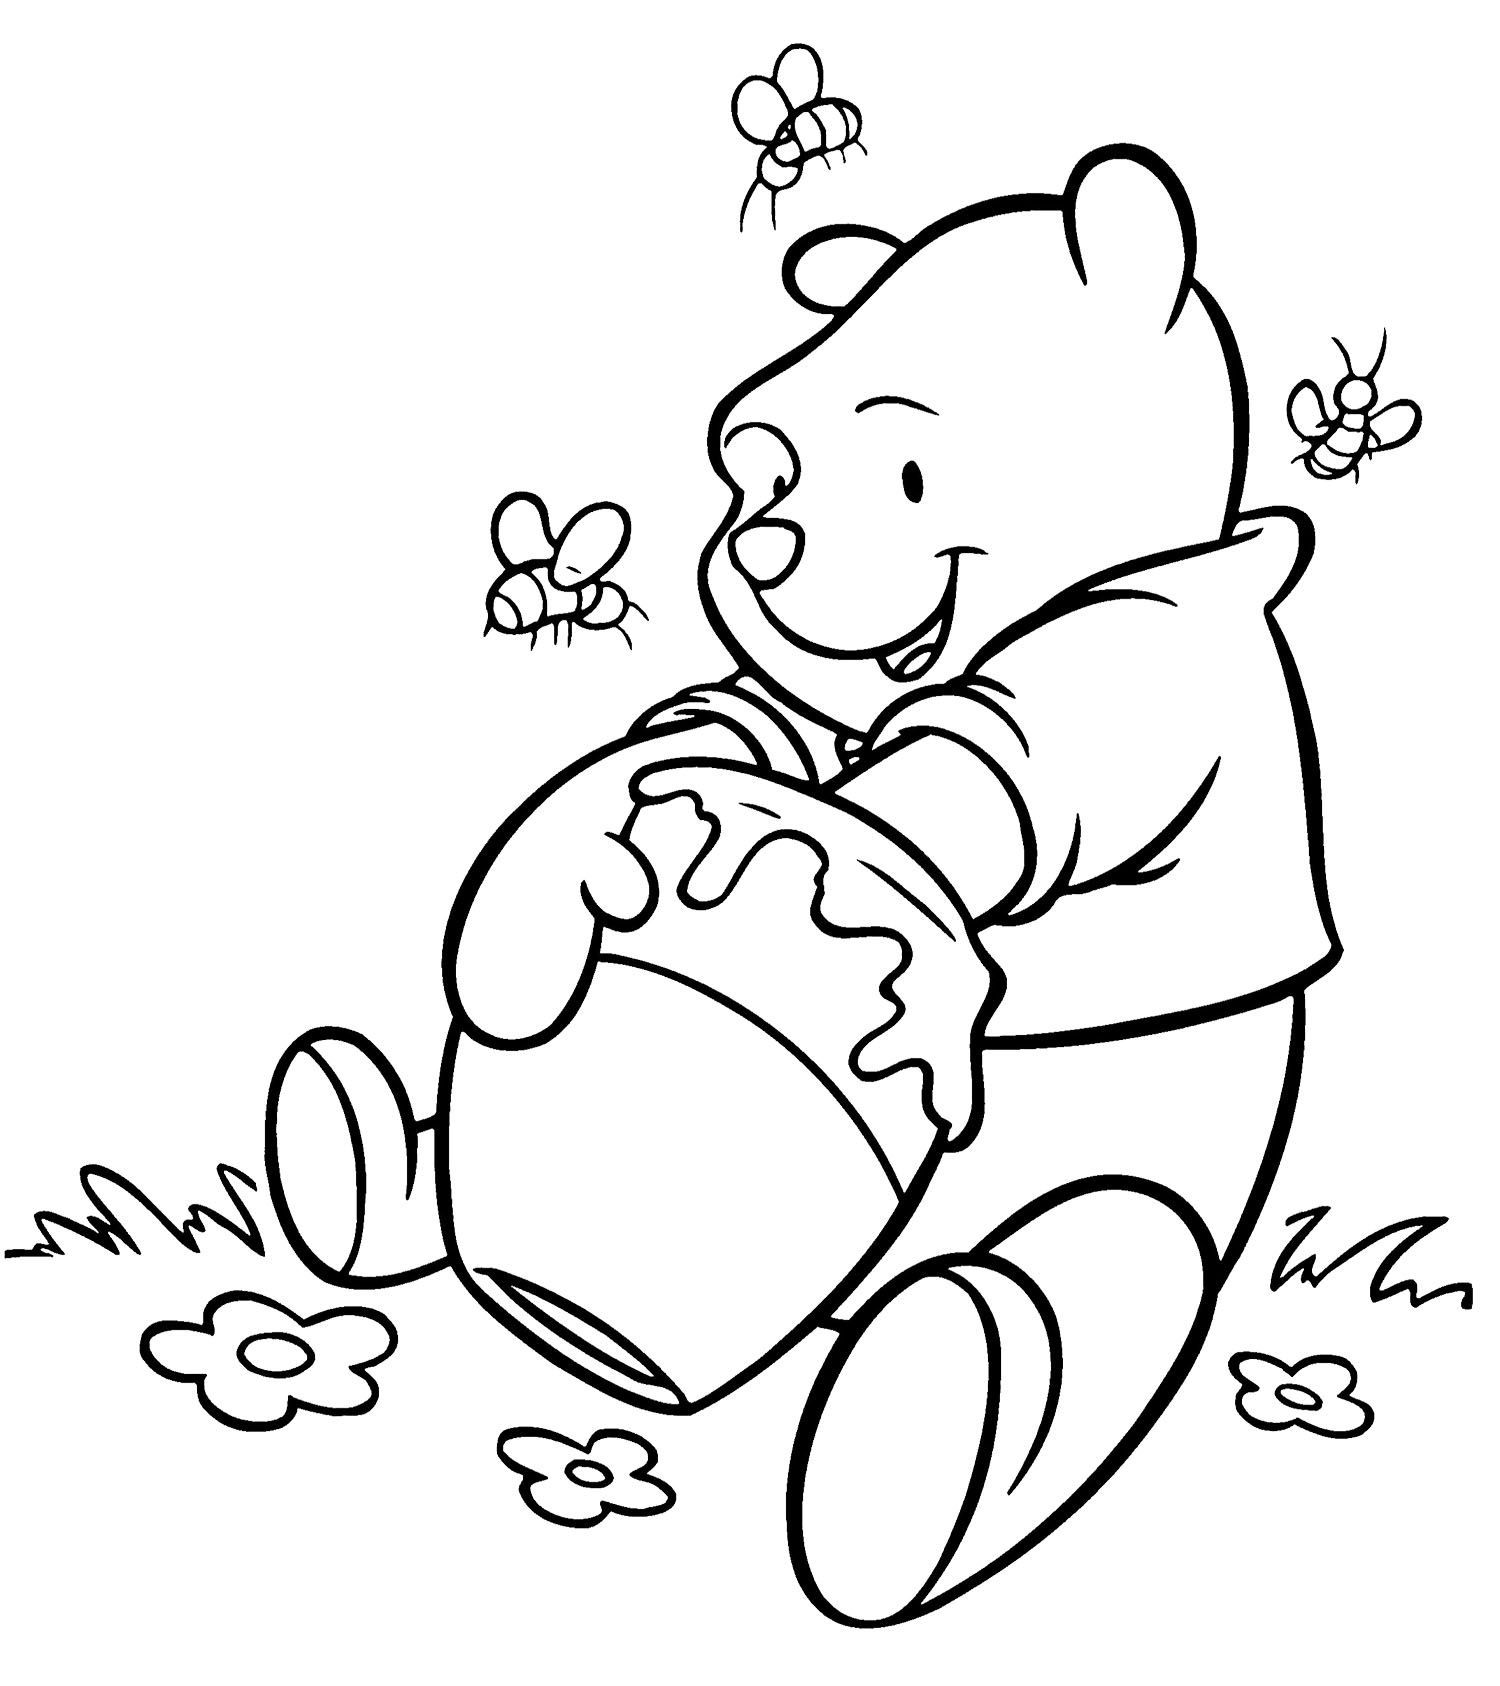 Winnie The Pooh Getting Delicious Honey Coloring Page Bee